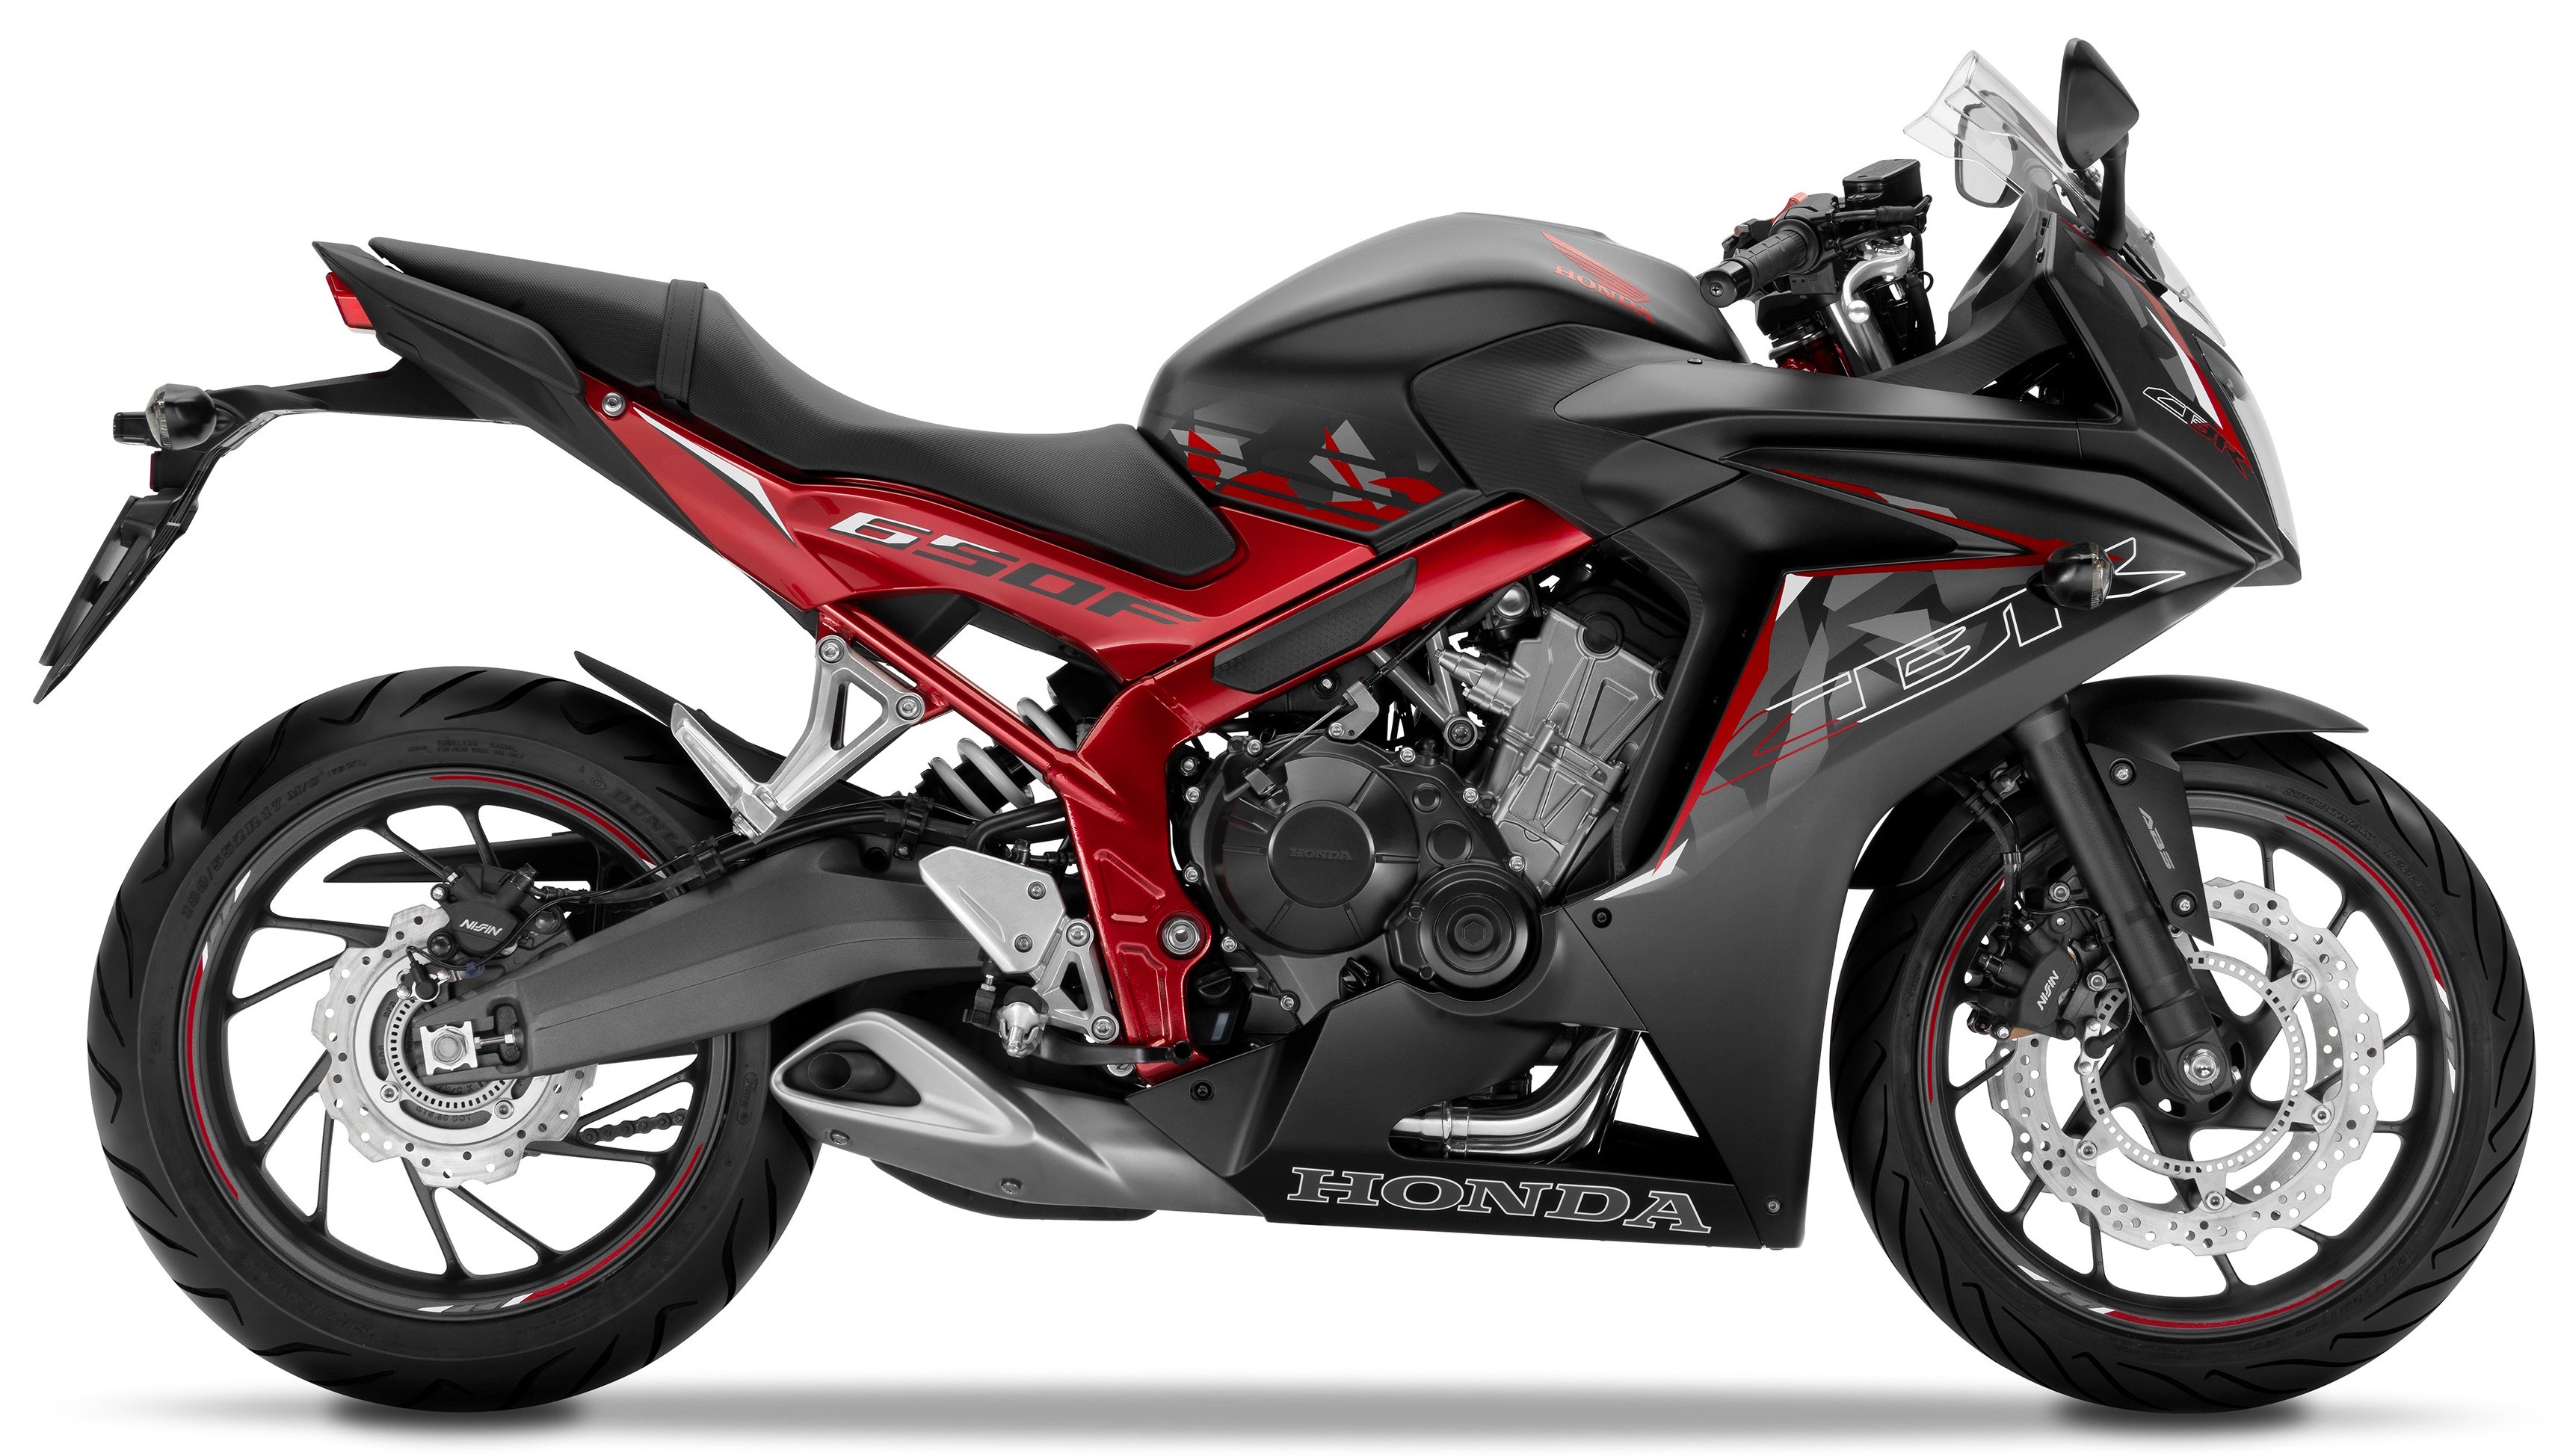 2017 sees Honda CB650F naked sports and CBR650F sportsbike in new ...